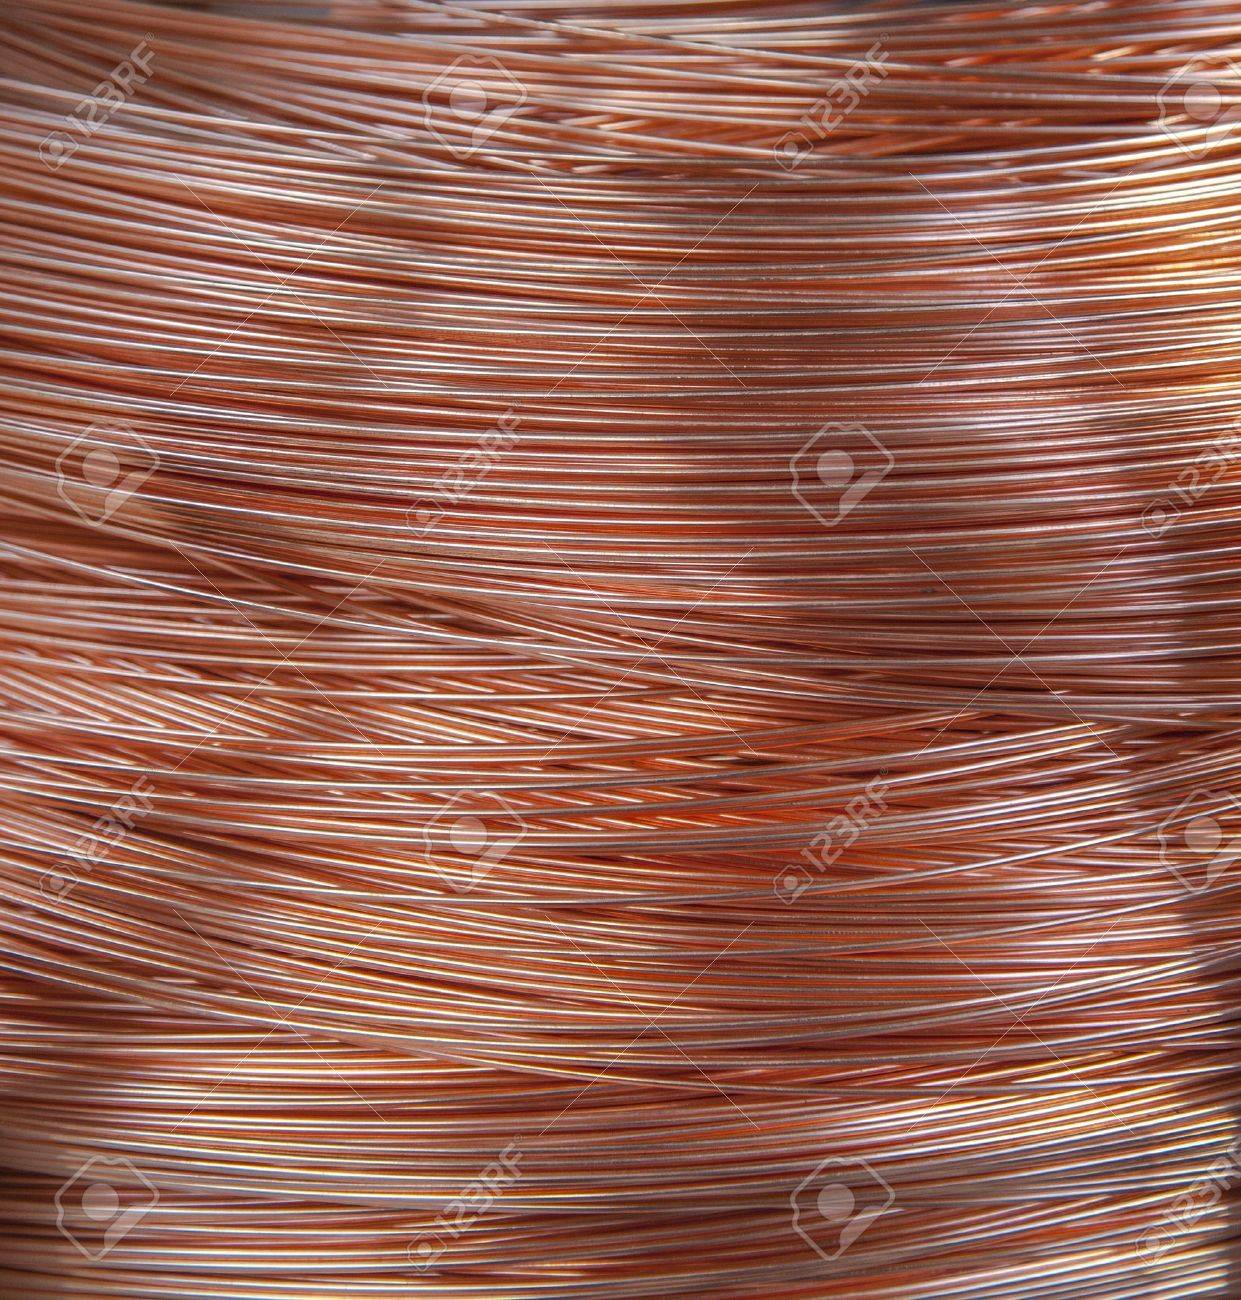 Copper Wire Spool In Factory Stock Photo, Picture And Royalty Free ...